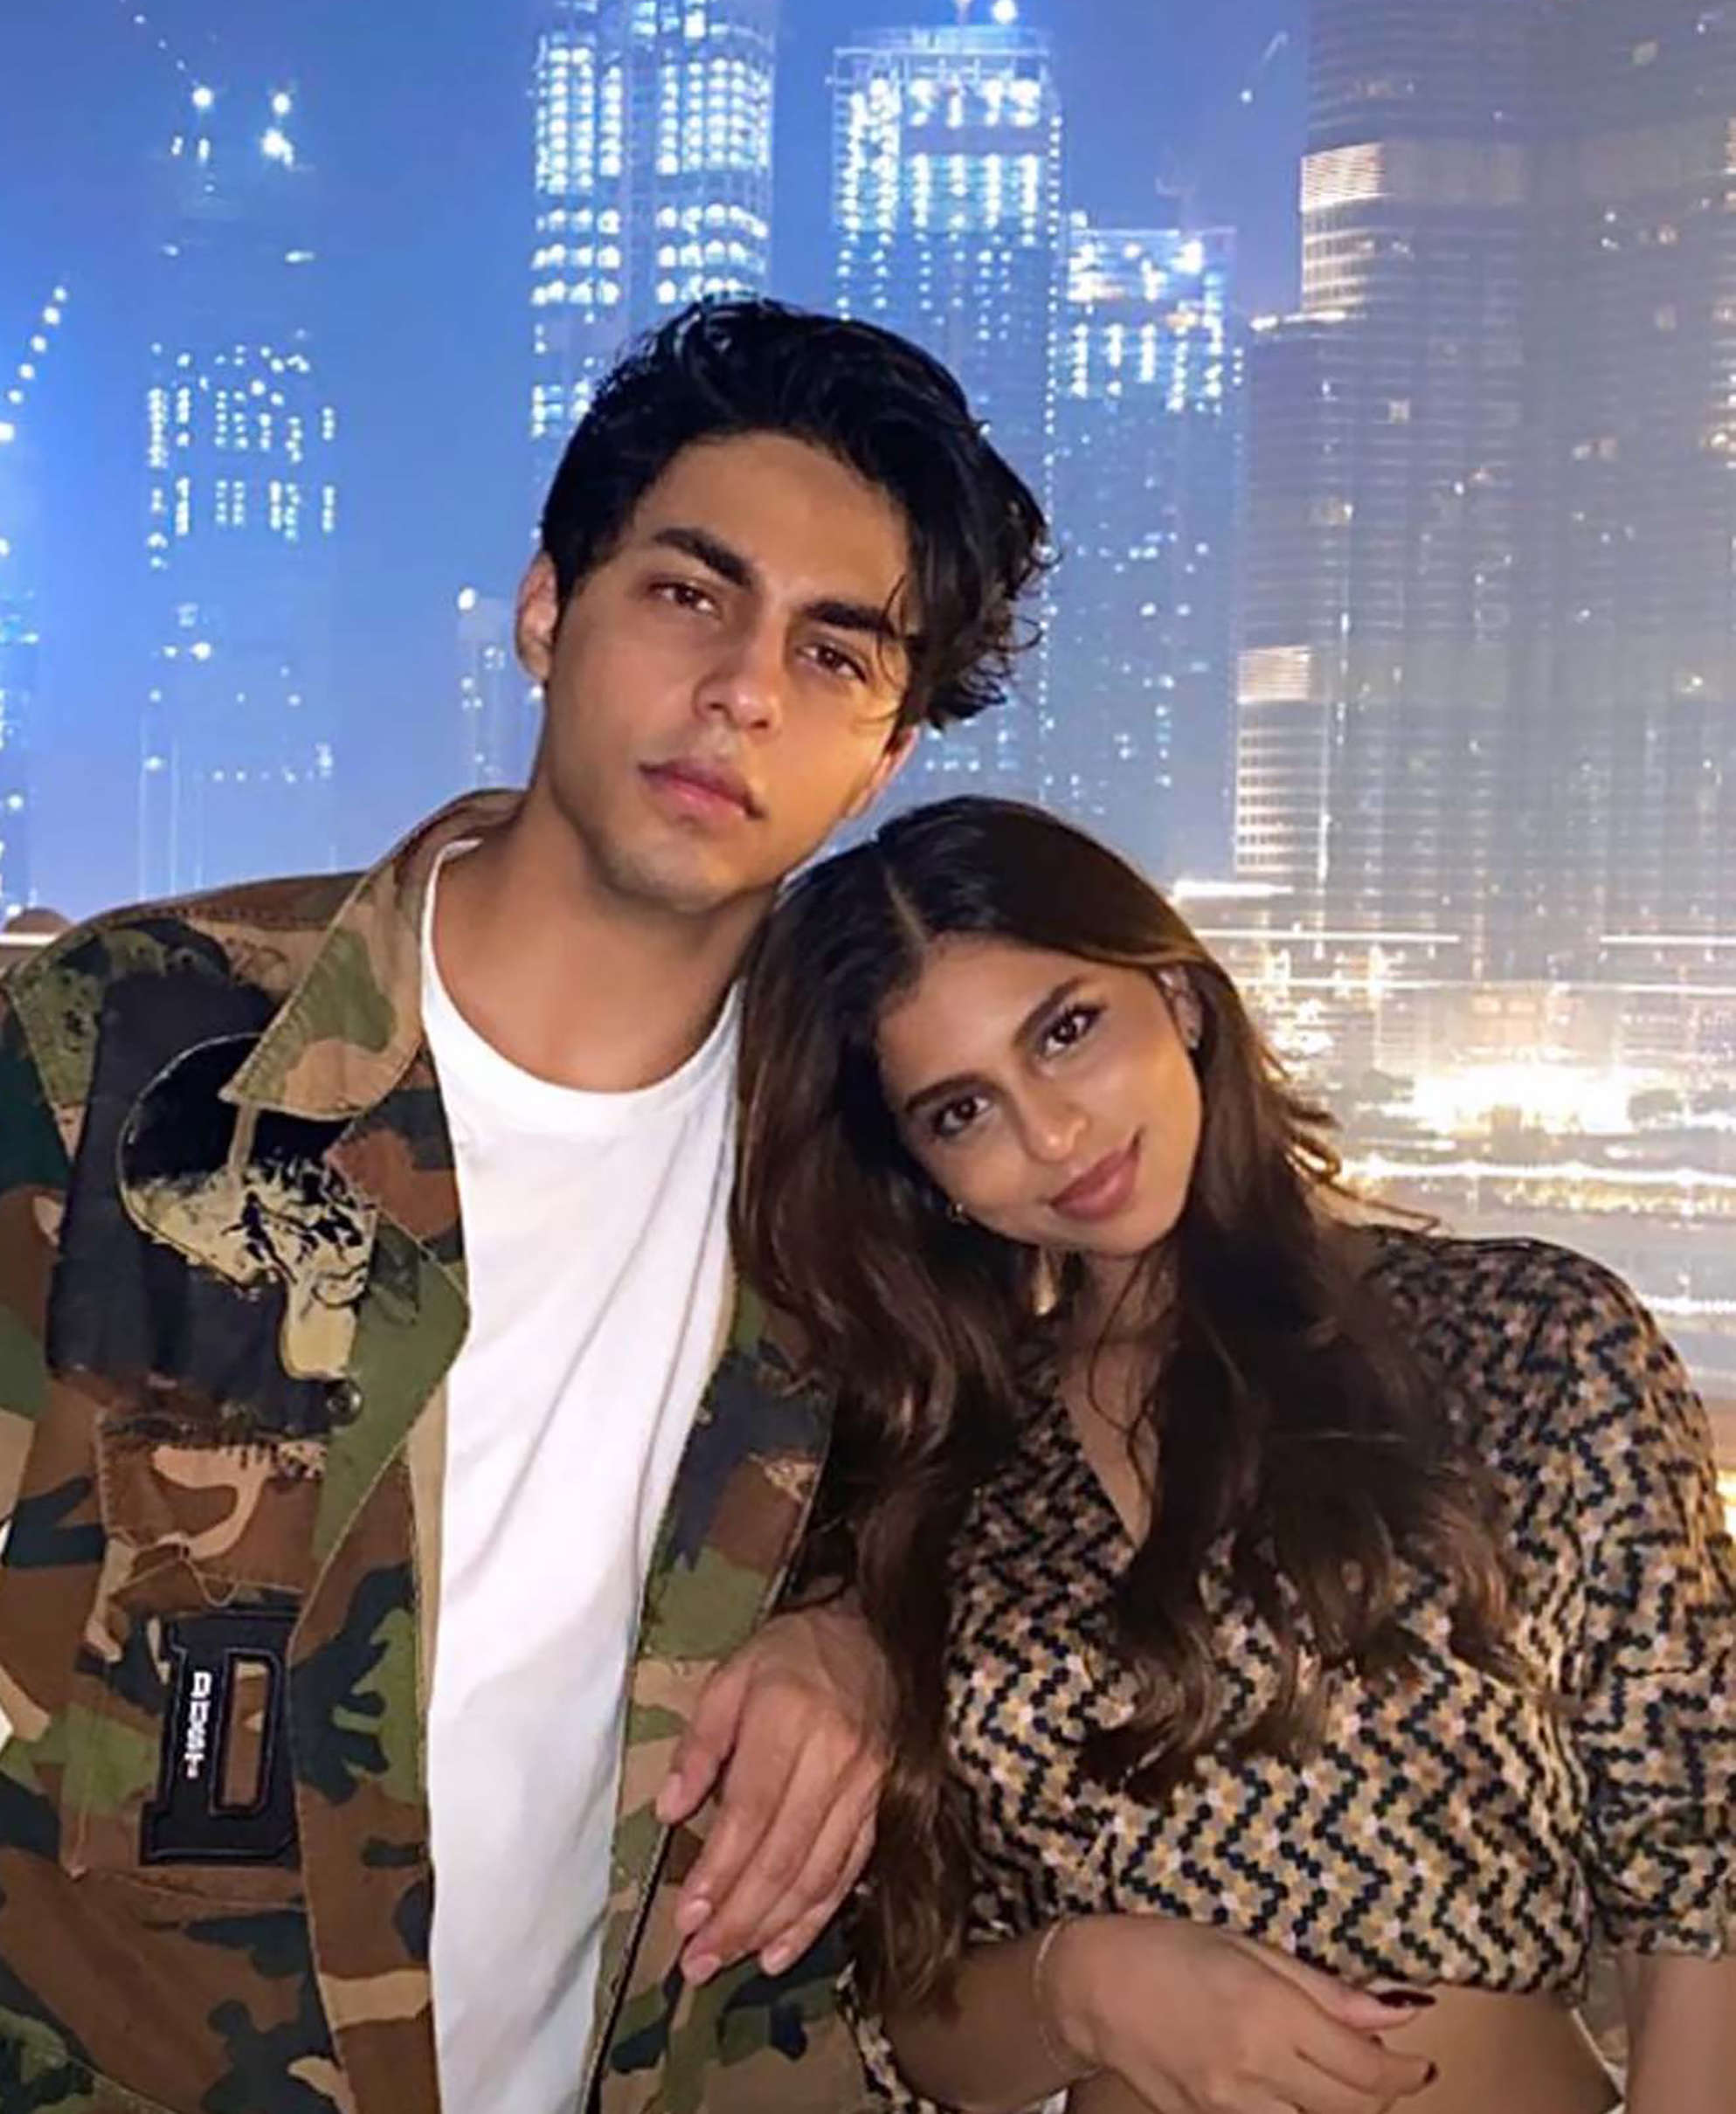 Suhana Khan wishes her brother and 'bestie' Aryan Khan with this cute photo